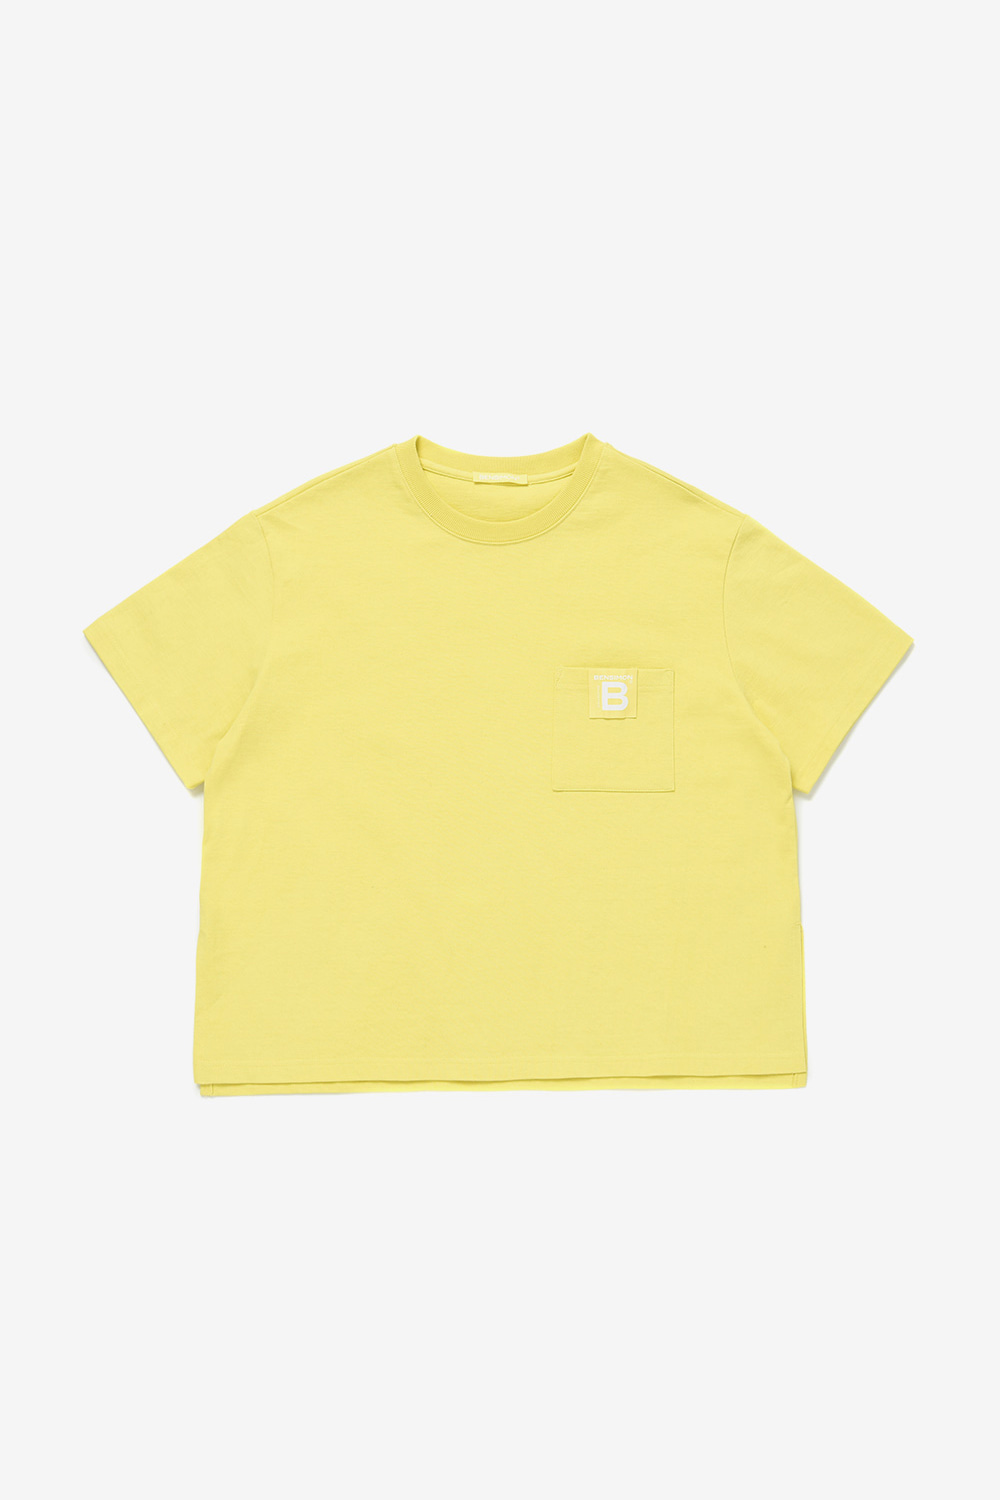 Original Label Half Sleeve_Yellow BS0STS204YL00F